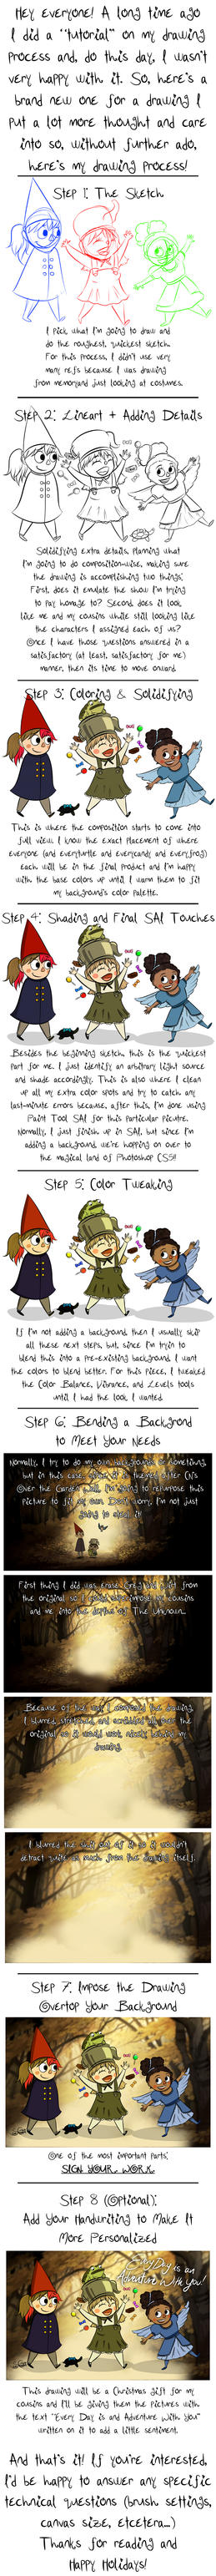 Drawing Process for Over the Garden Girls by Captain-Grossaint